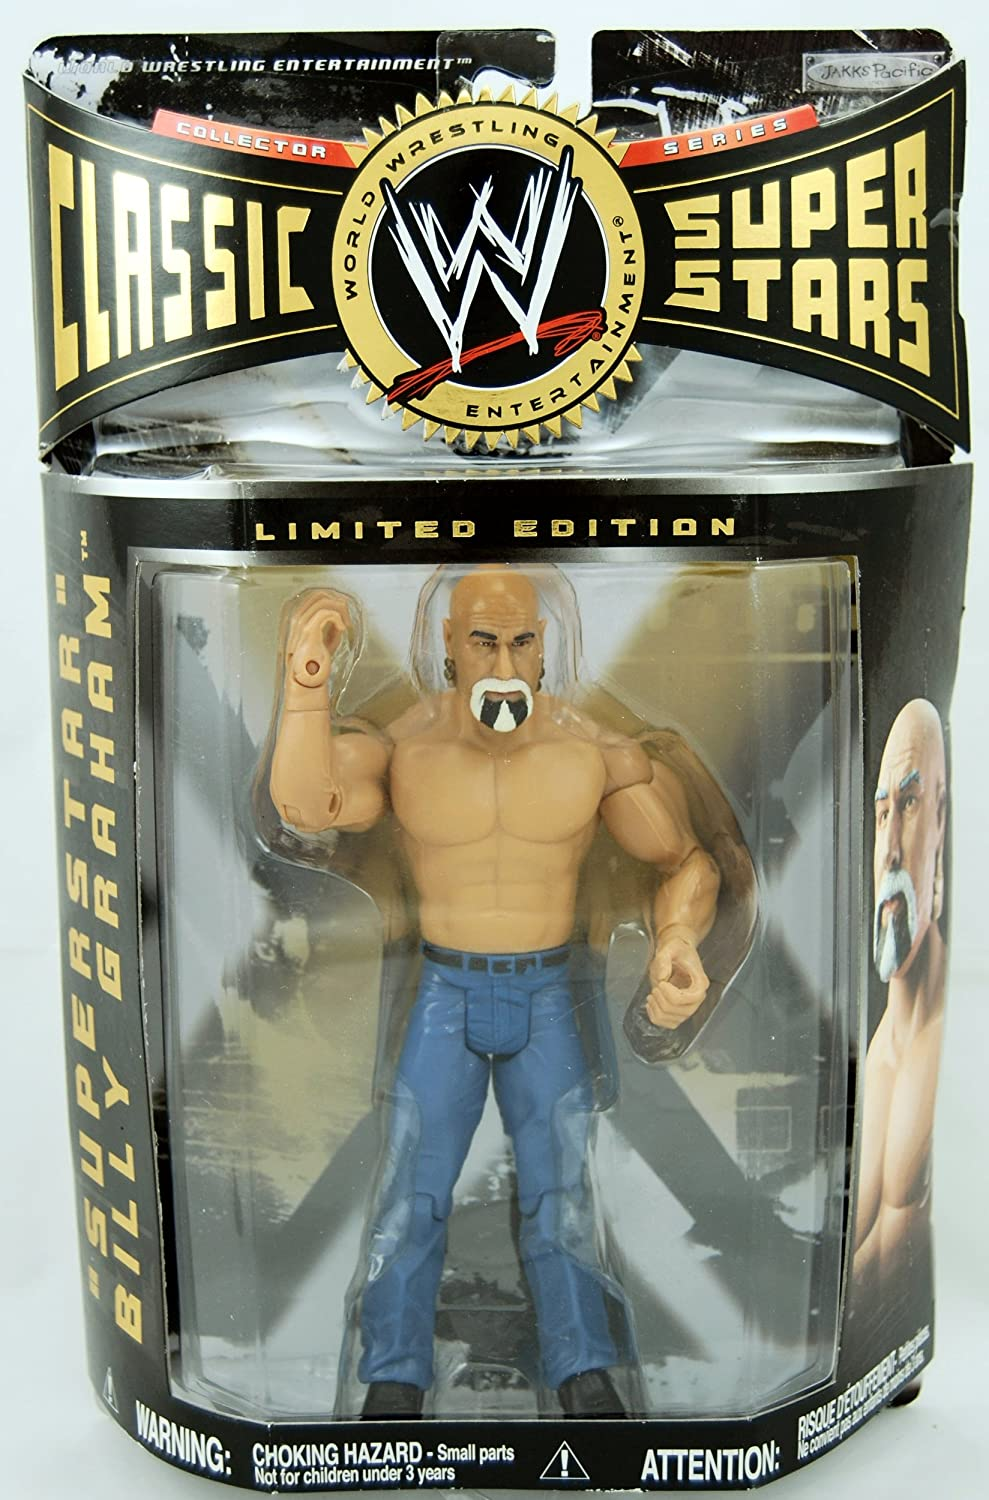 World Wrestling Entertainment Classic Superstar Limited Edition - Billy Graham in Blau Jeans by Jakks Pacific